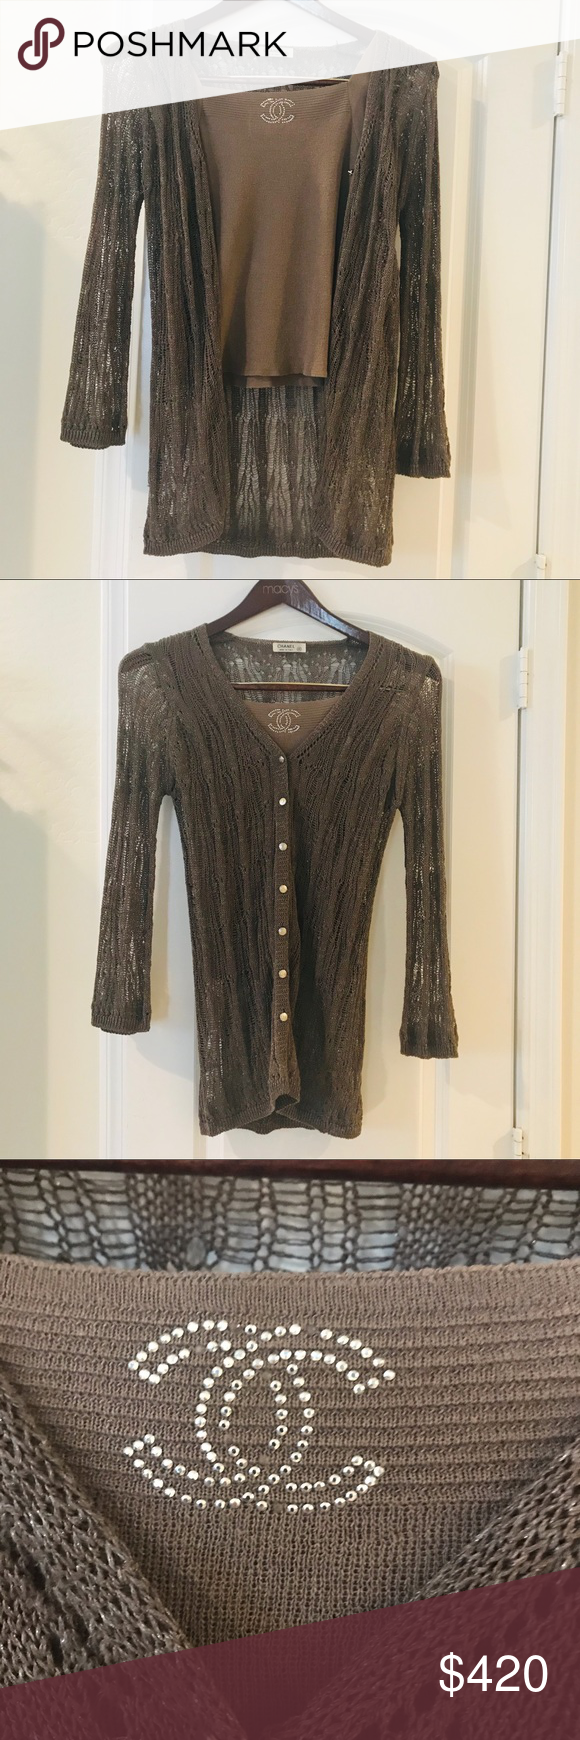 Metal accents and gold. Love the 20s Sale Cardigan Sweater Black trimmed in lace A very classic look